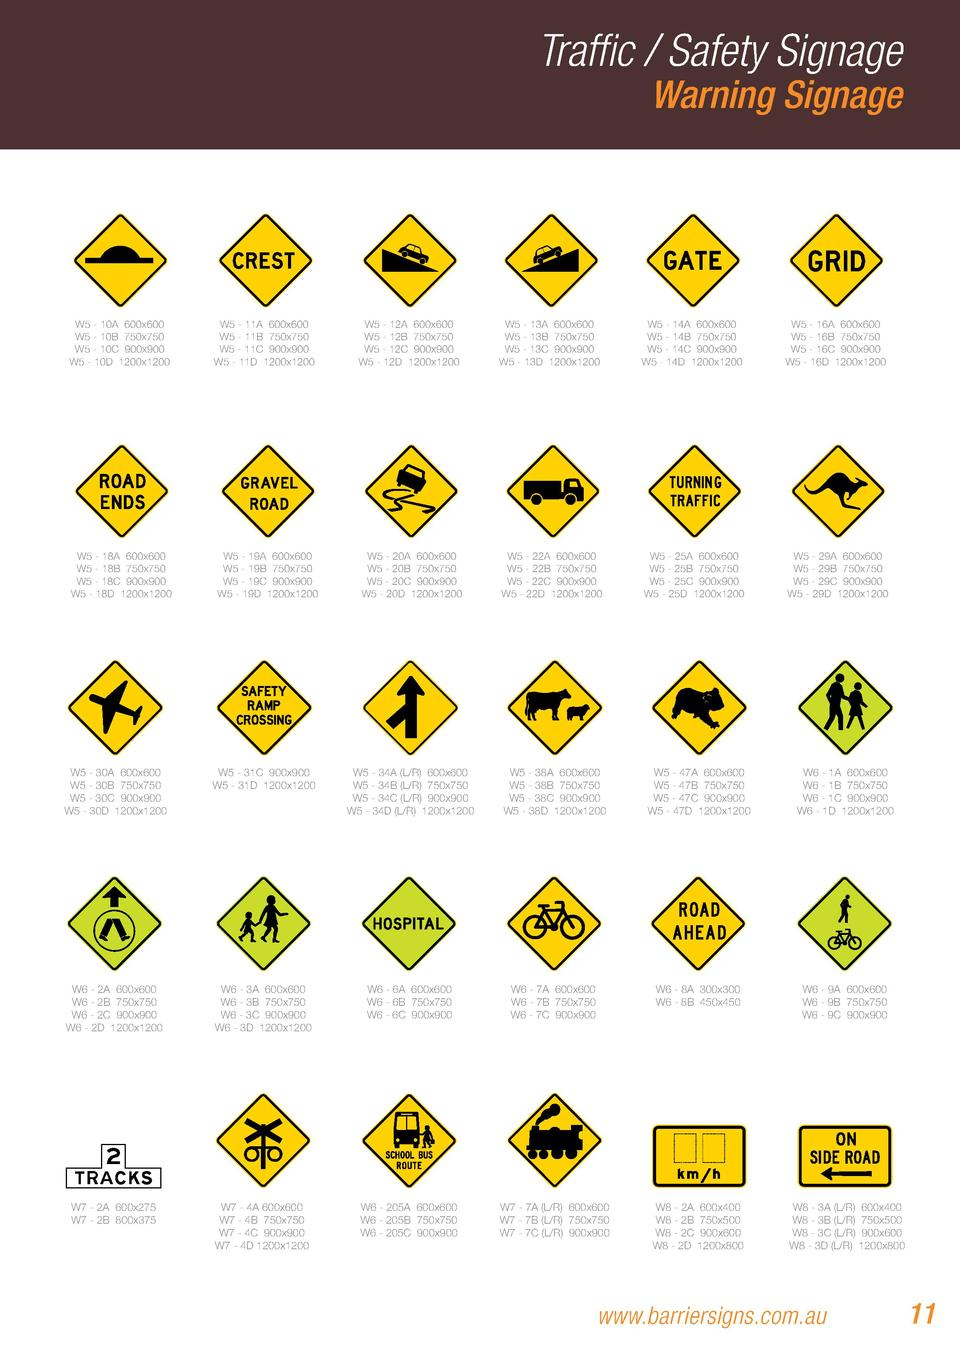 Traffic   Safety Signage Warning Signage  W5 - 10A 600x600 W5 - 10B 750x750 W5 - 10C 900x900 W5 - 10D 1200x1200  W5 - 18A ...